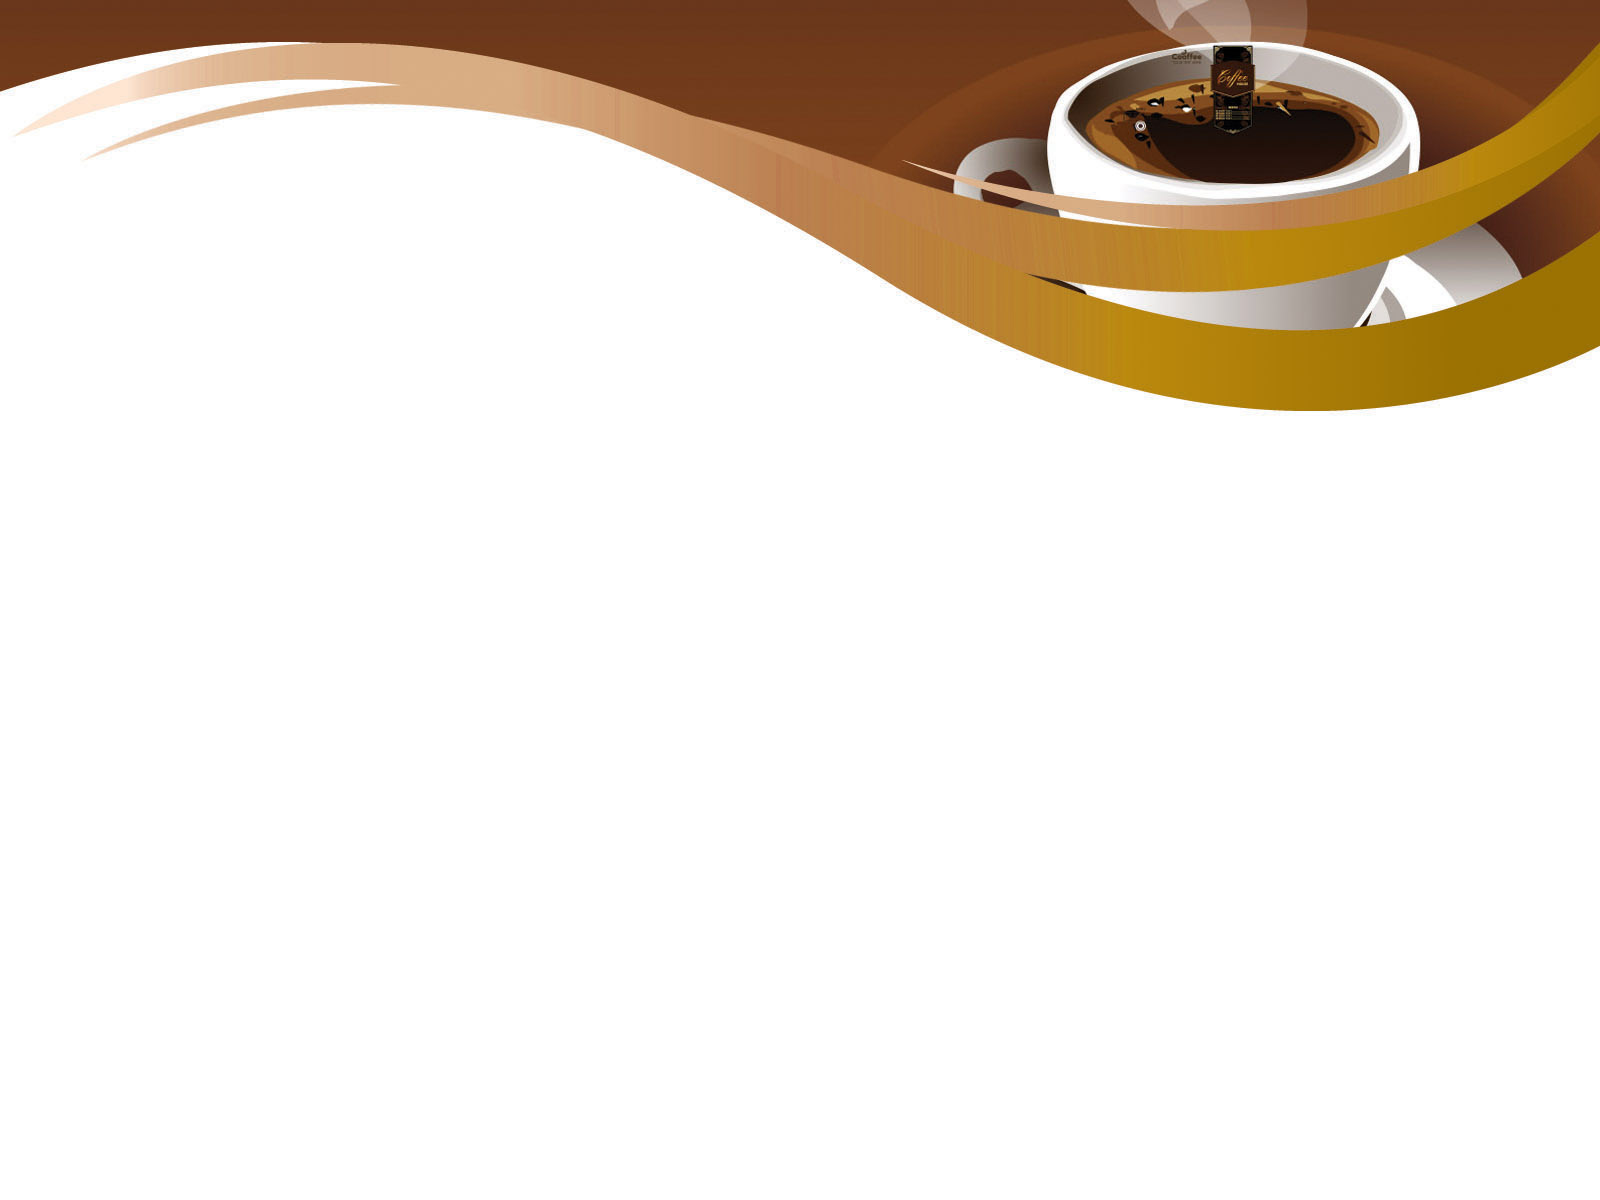 Coffee Table Powerpoint Templates Brown Food Drink Free Ppt Backgrounds And Templates